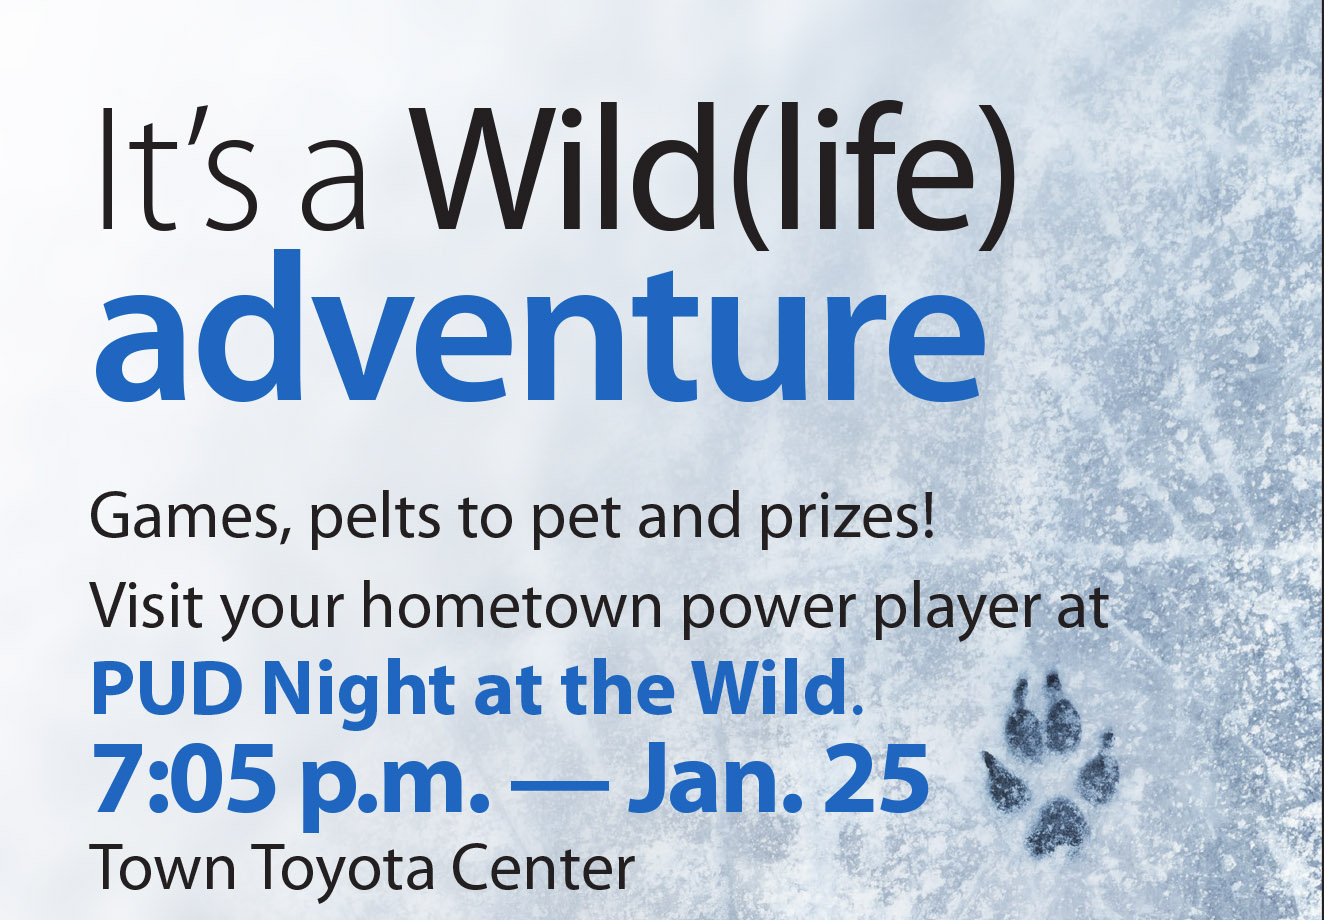 Join us Jan. 25 for Chelan PUD Night at the Wild